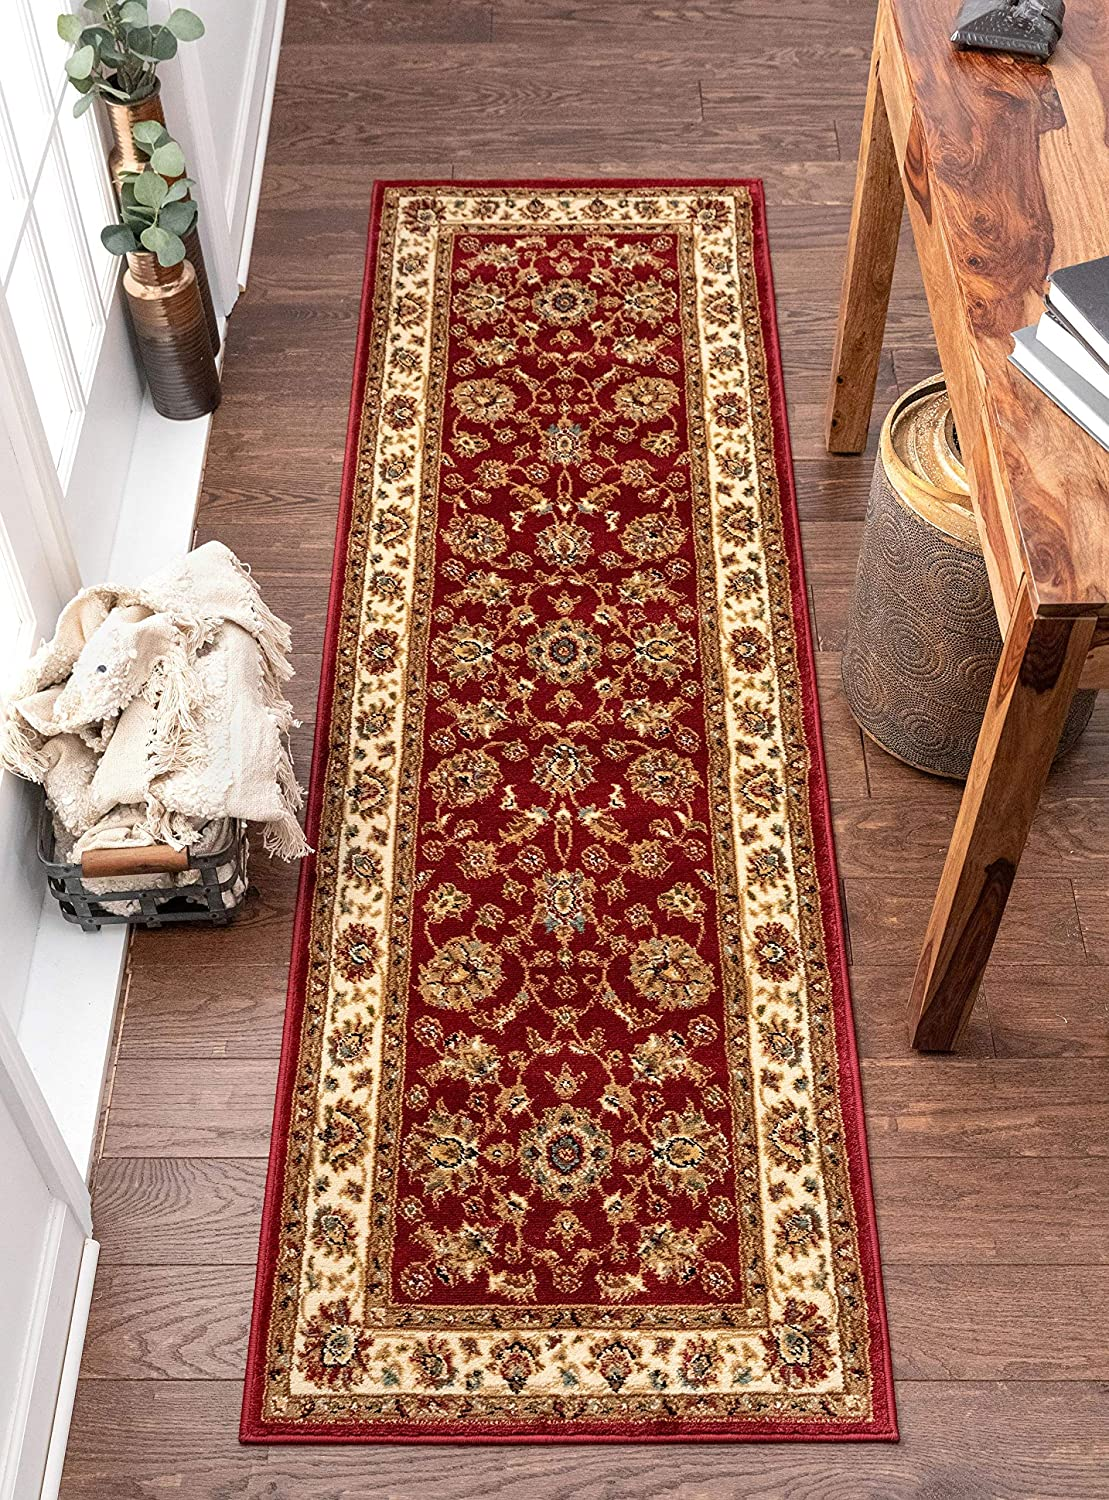 Well Woven Persian Oriental Runner Rug Max 55% OFF 2x8 Red 7'3